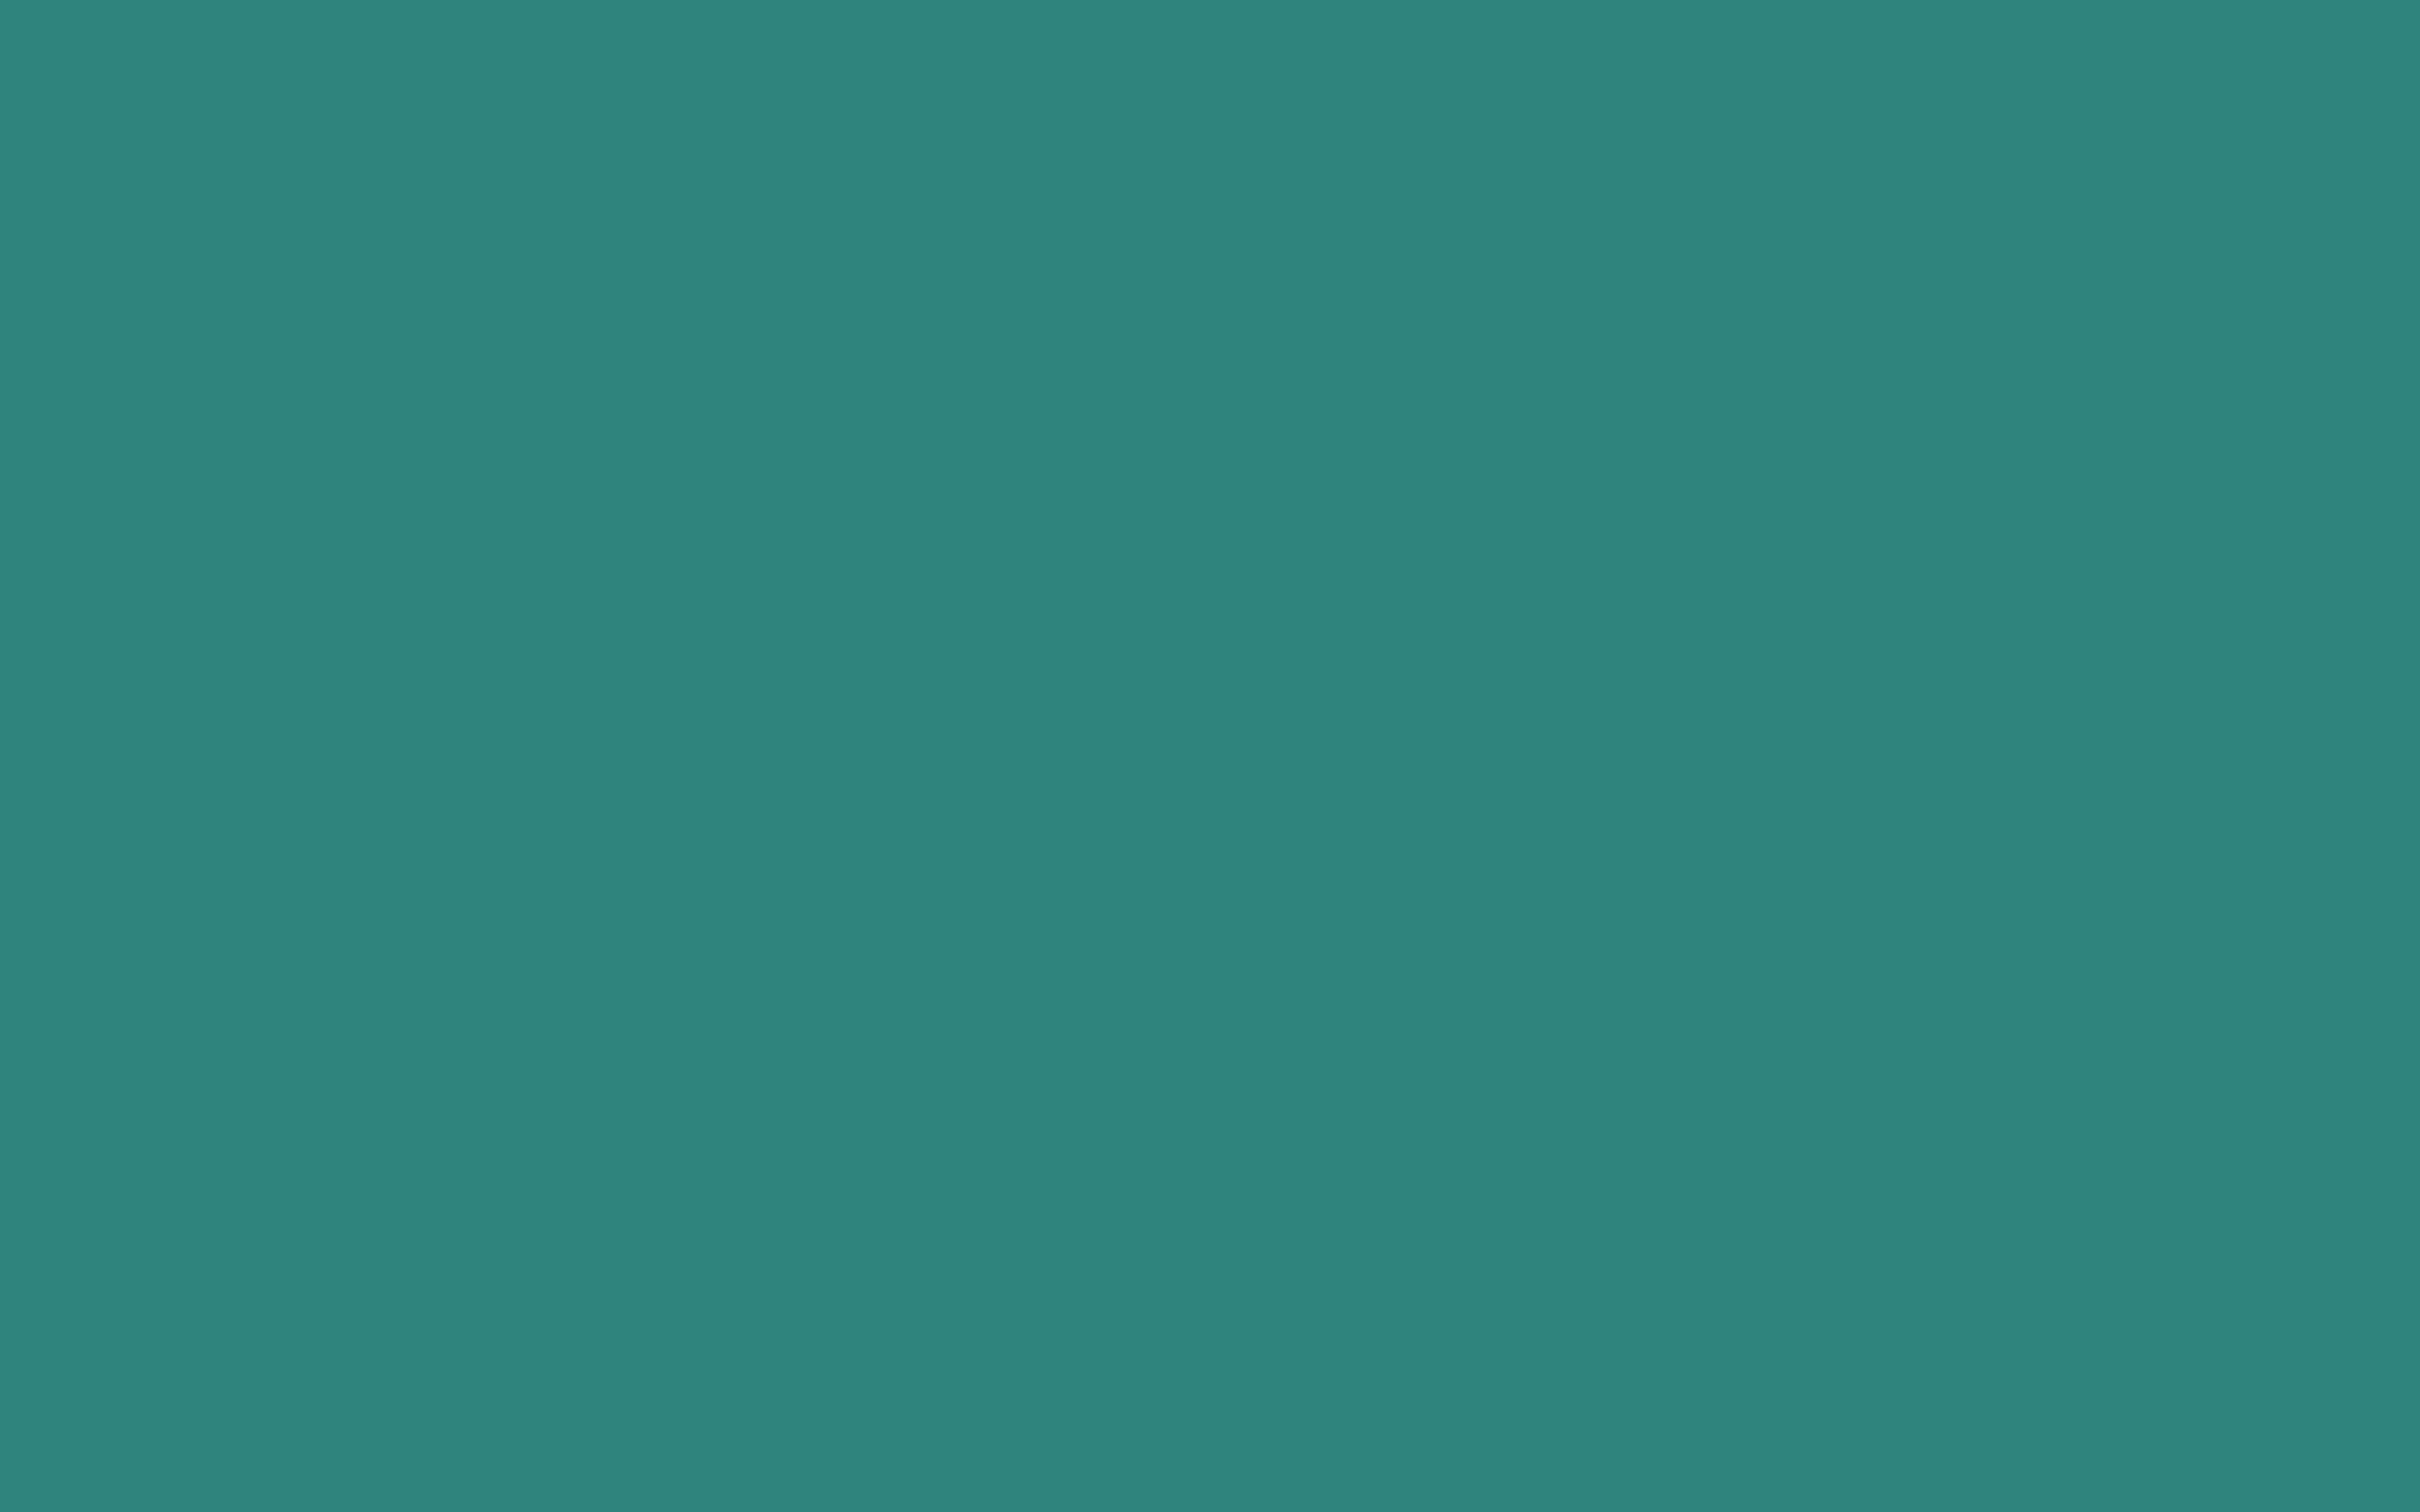 2880x1800 Celadon Green Solid Color Background